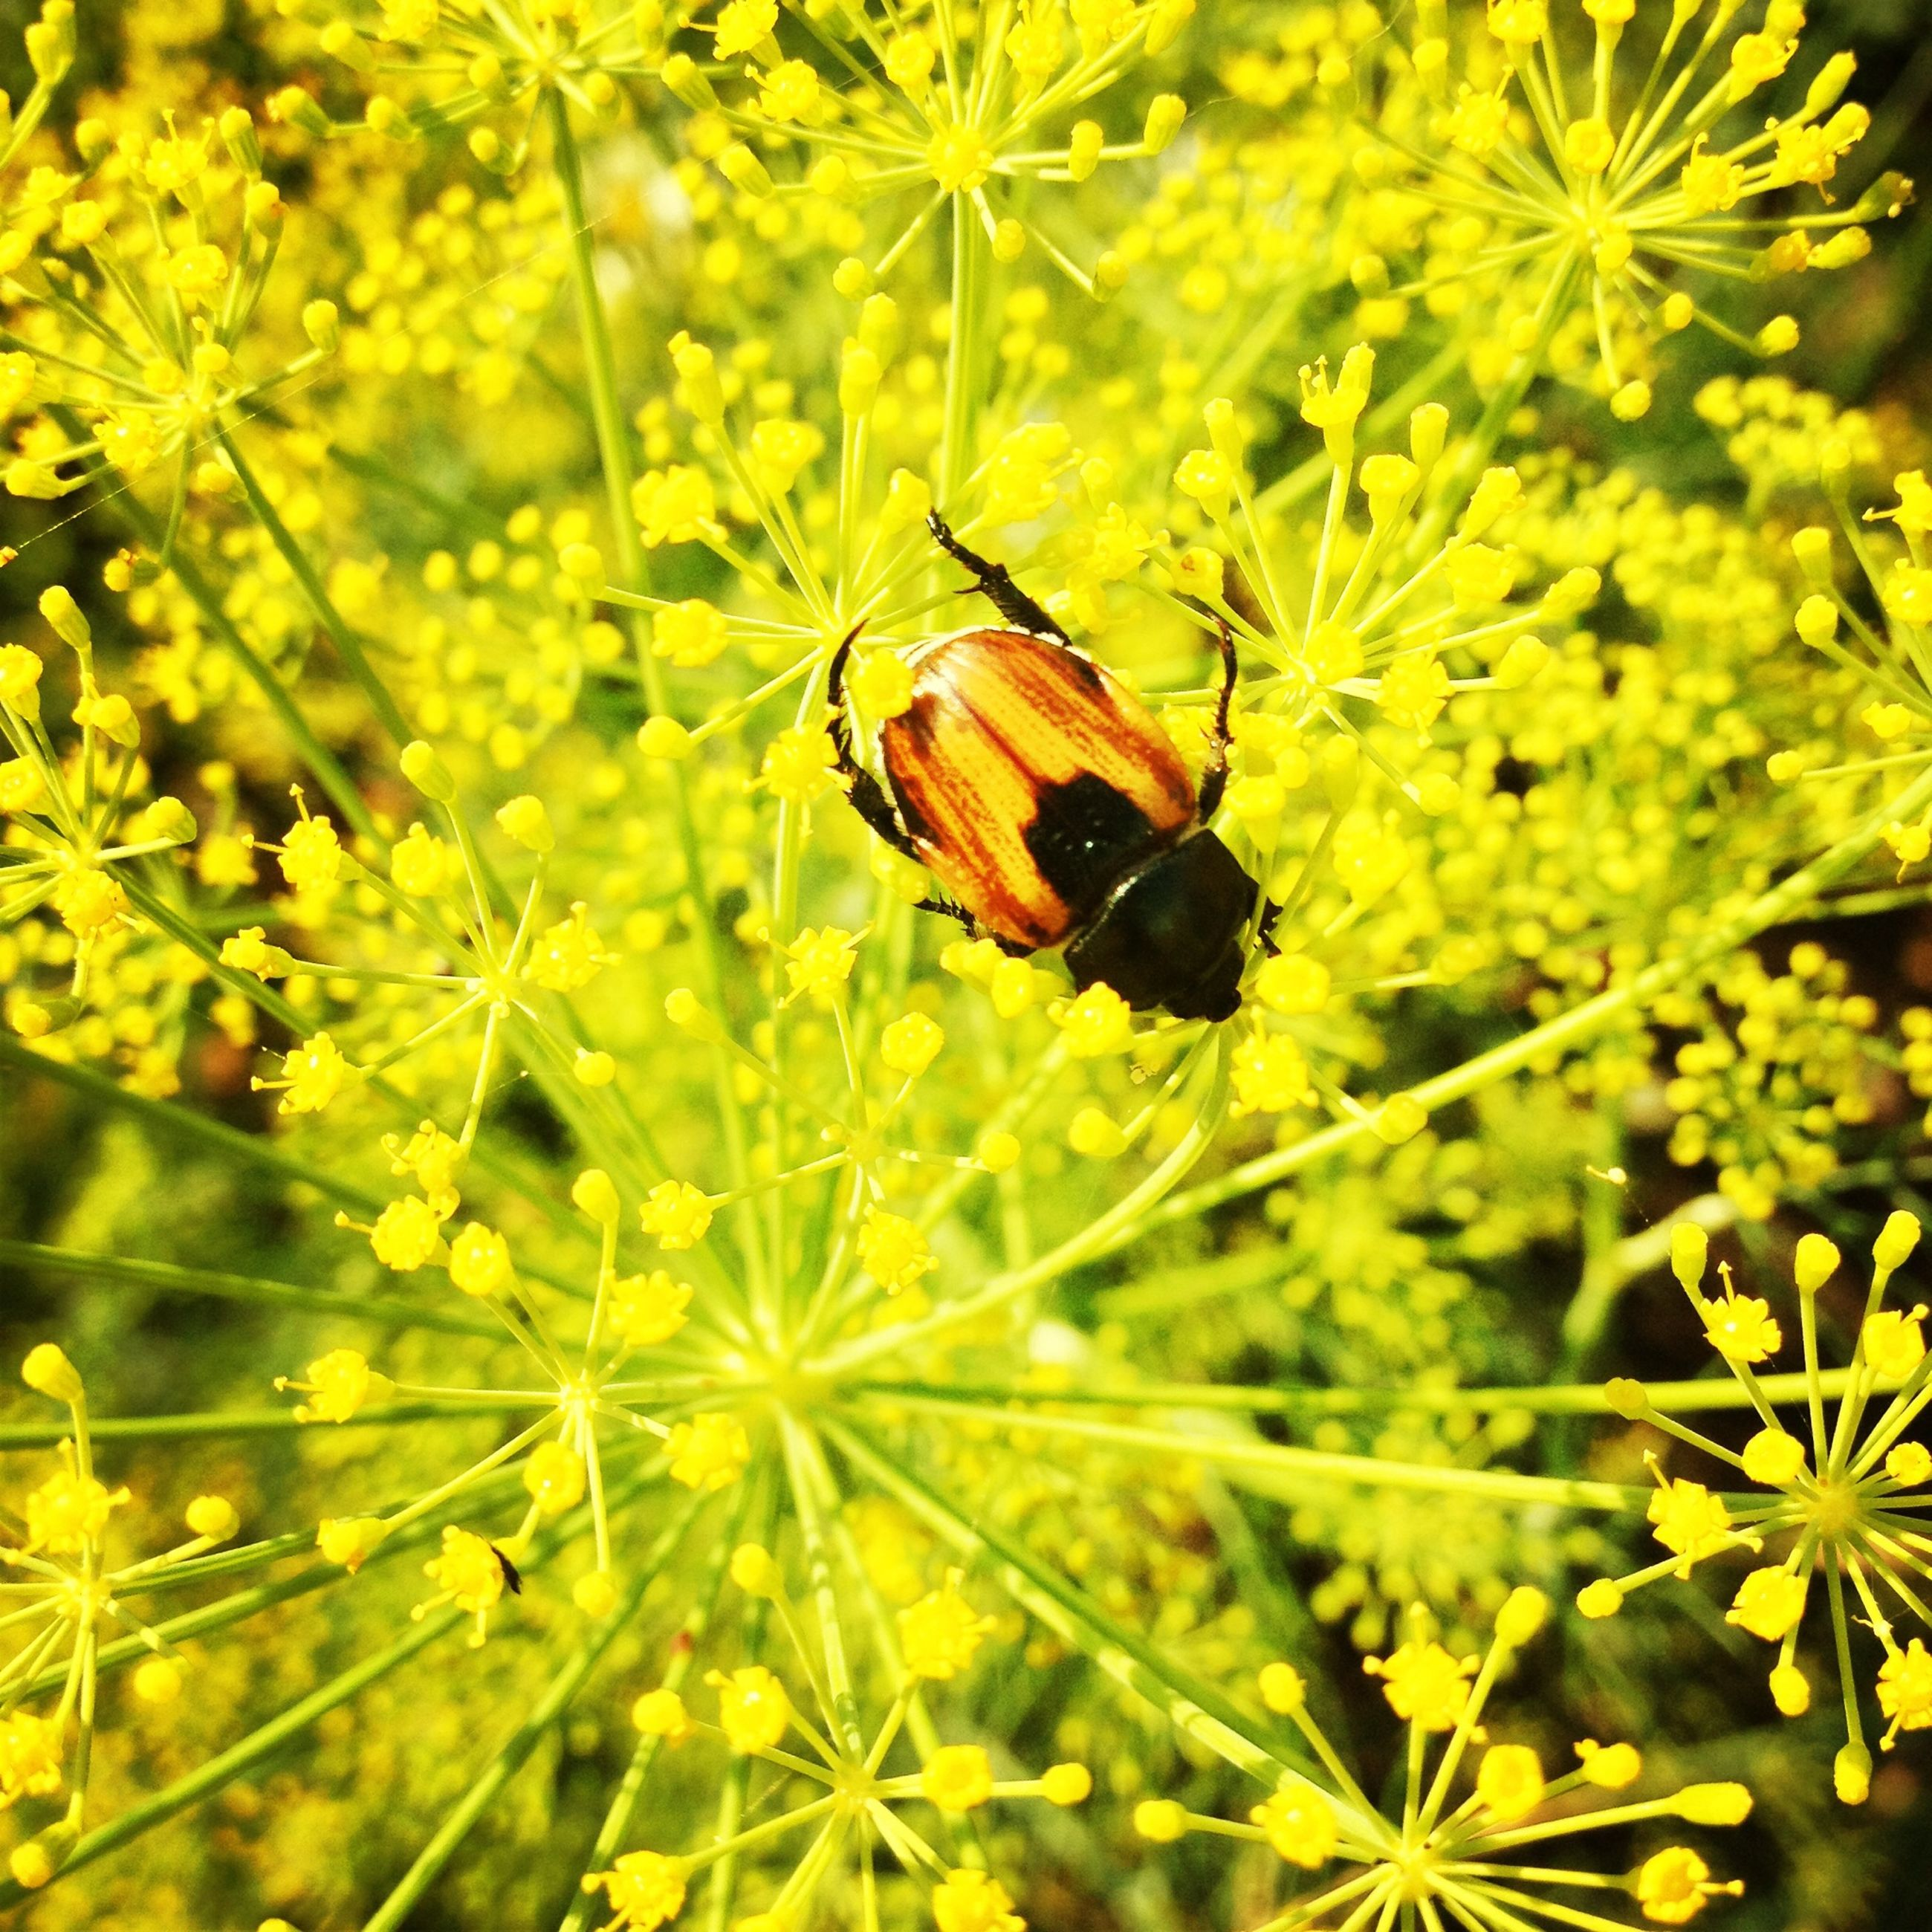 one animal, insect, animal themes, animals in the wild, wildlife, flower, growth, nature, butterfly, beauty in nature, butterfly - insect, plant, close-up, perching, leaf, fragility, pollination, freshness, focus on foreground, yellow